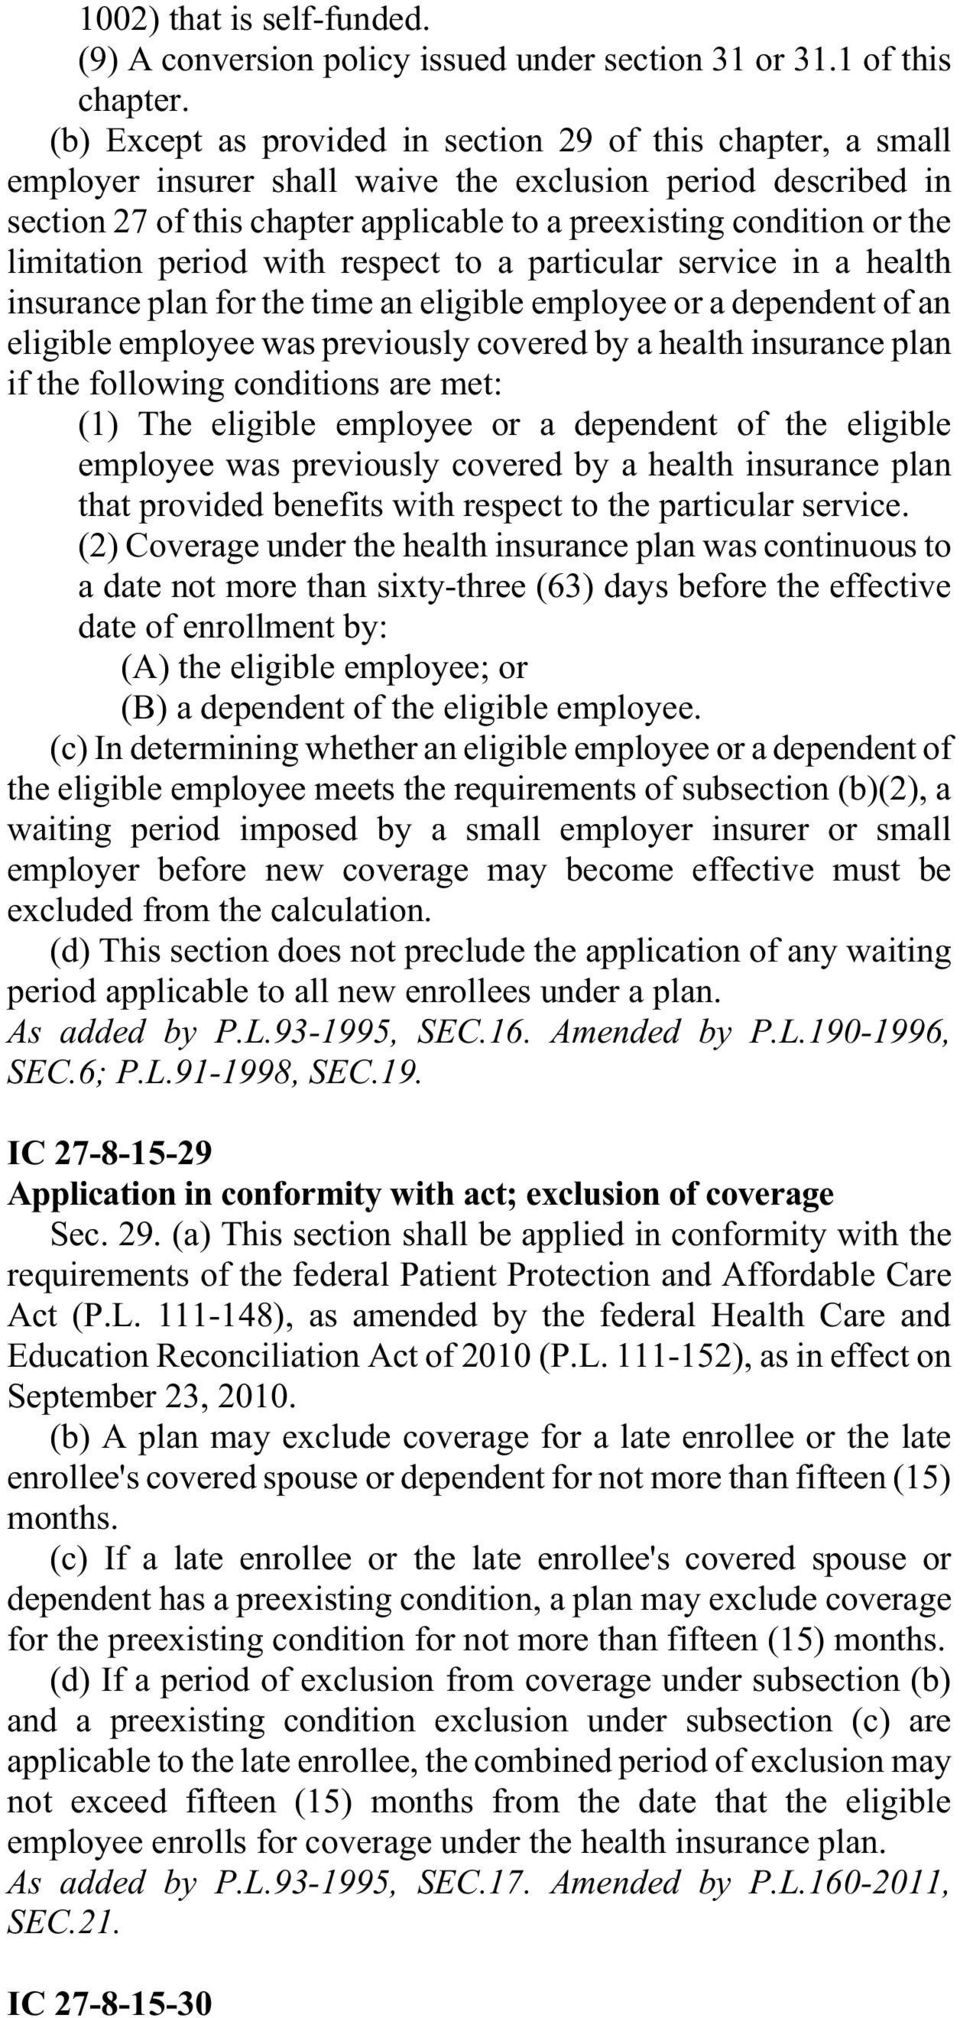 limitation period with respect to a particular service in a health insurance plan for the time an eligible employee or a dependent of an eligible employee was previously covered by a health insurance